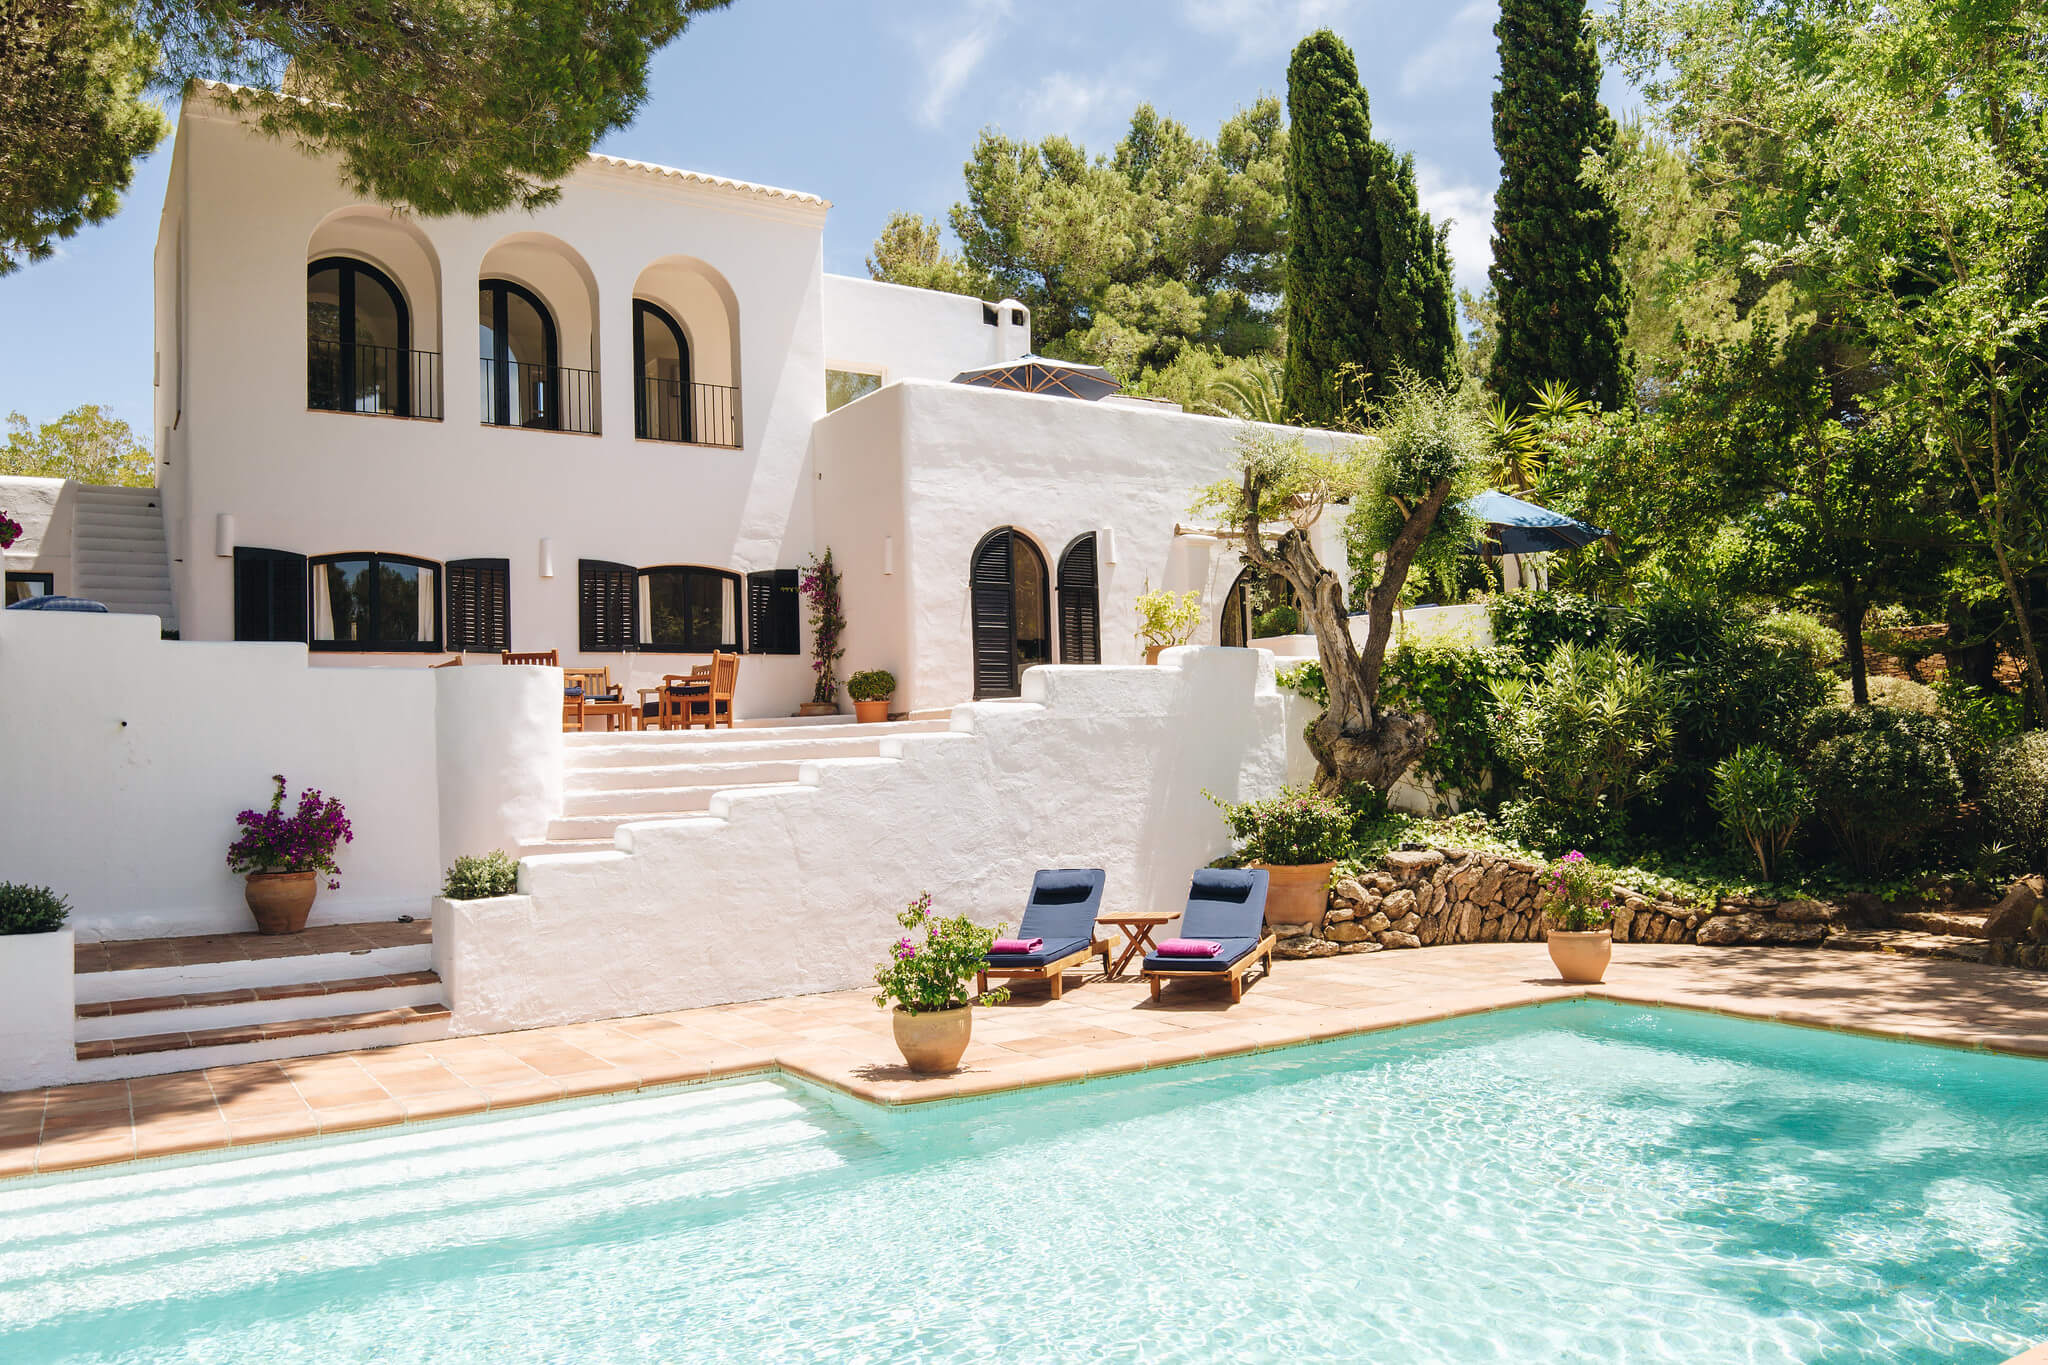 https://www.white-ibiza.com/wp-content/uploads/2020/05/white-ibiza-villas-can-amelida-exterior-house-from-pool.jpg